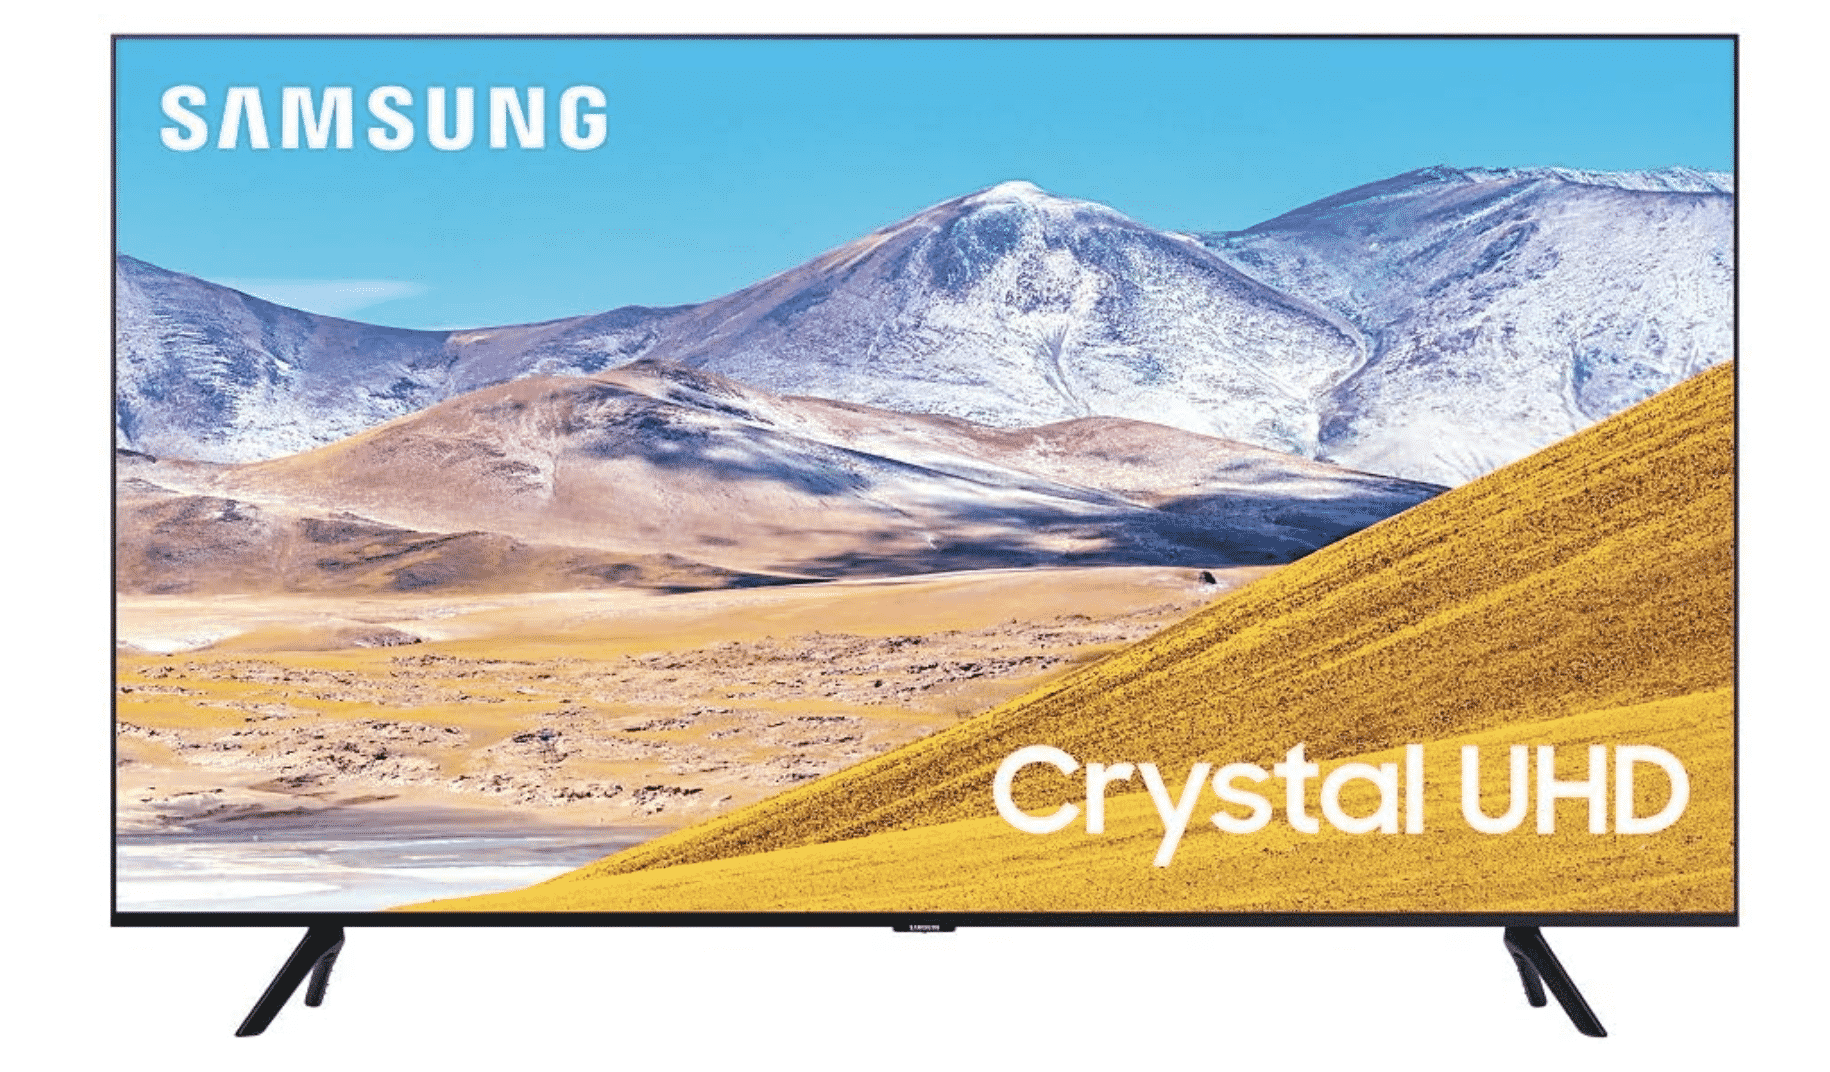 Samsung 65 inch TV Black Friday